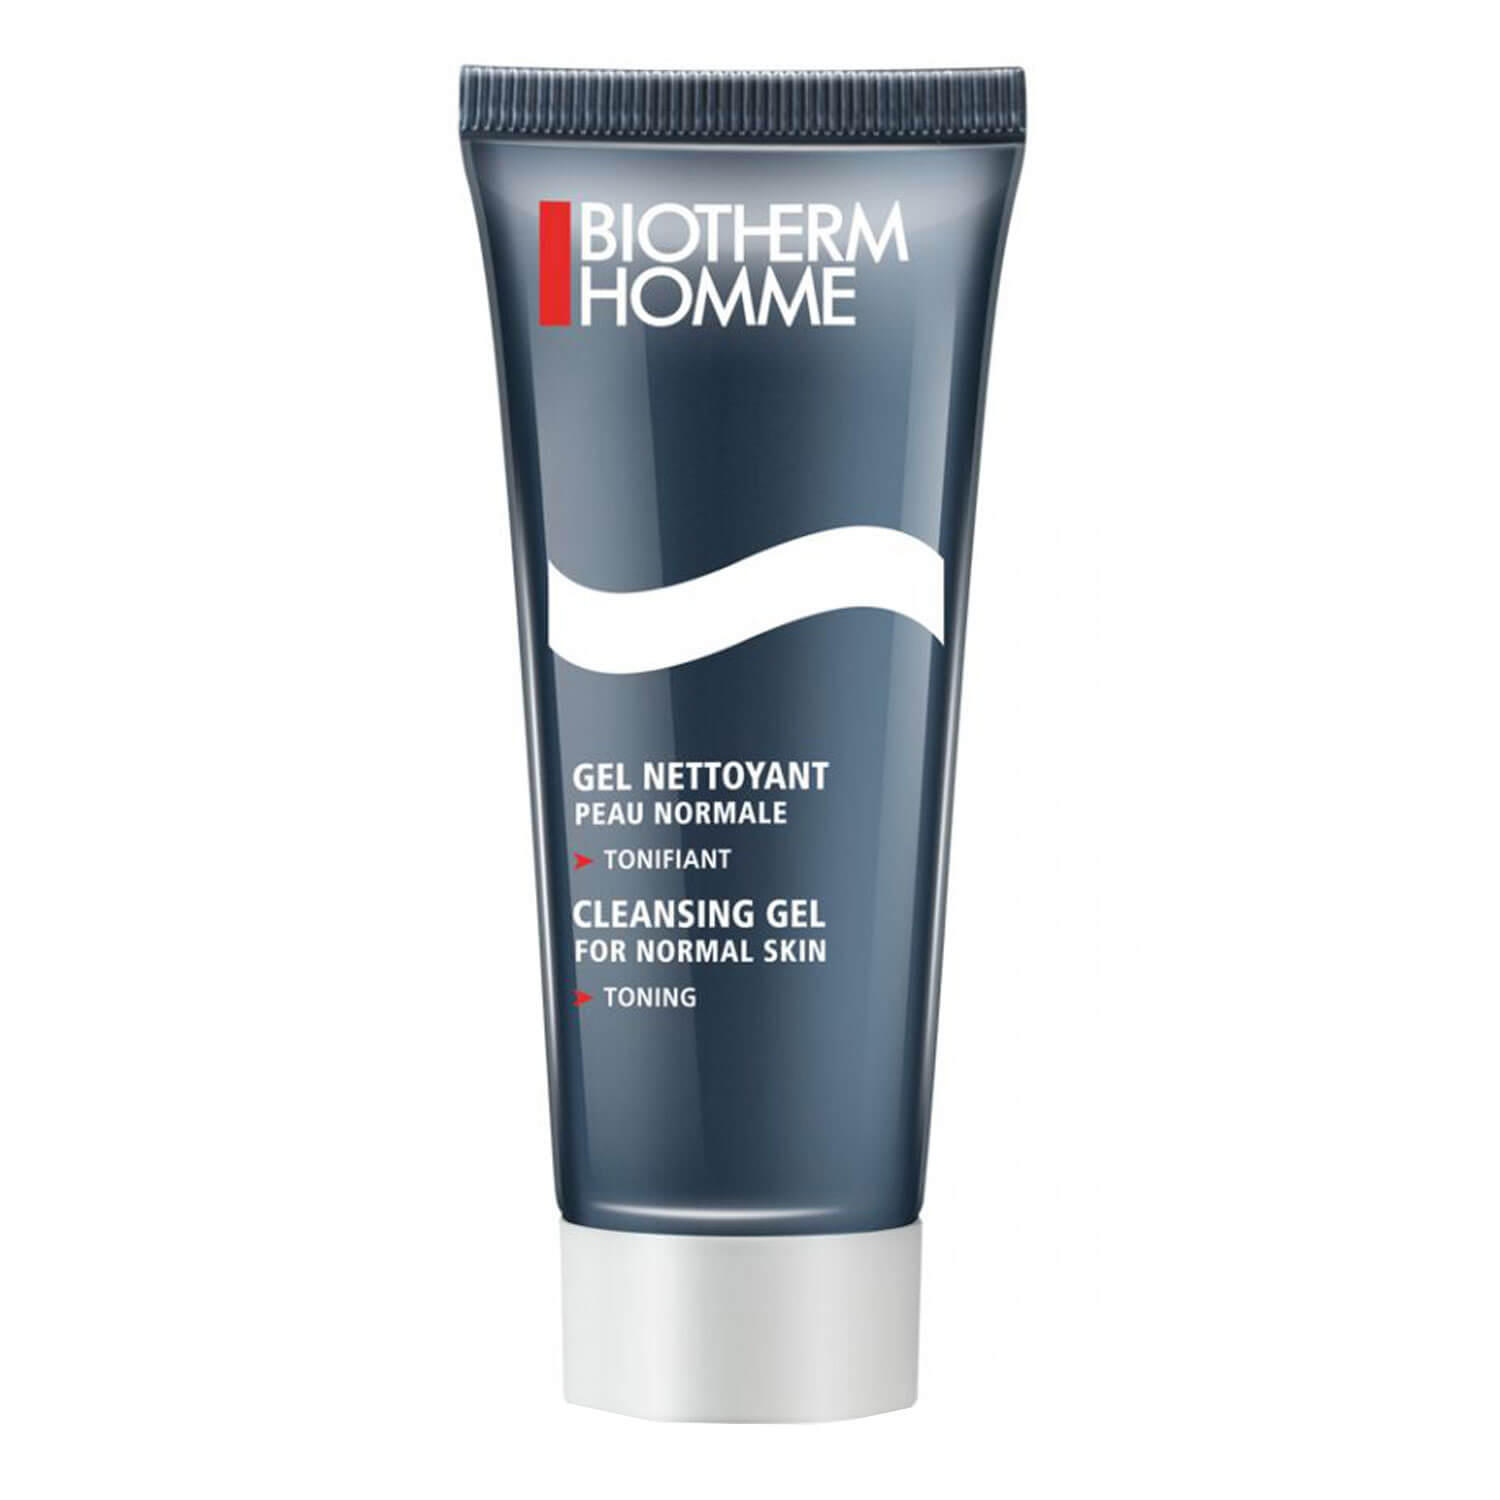 Biotherm Homme - Cleansing Gel - 150ml